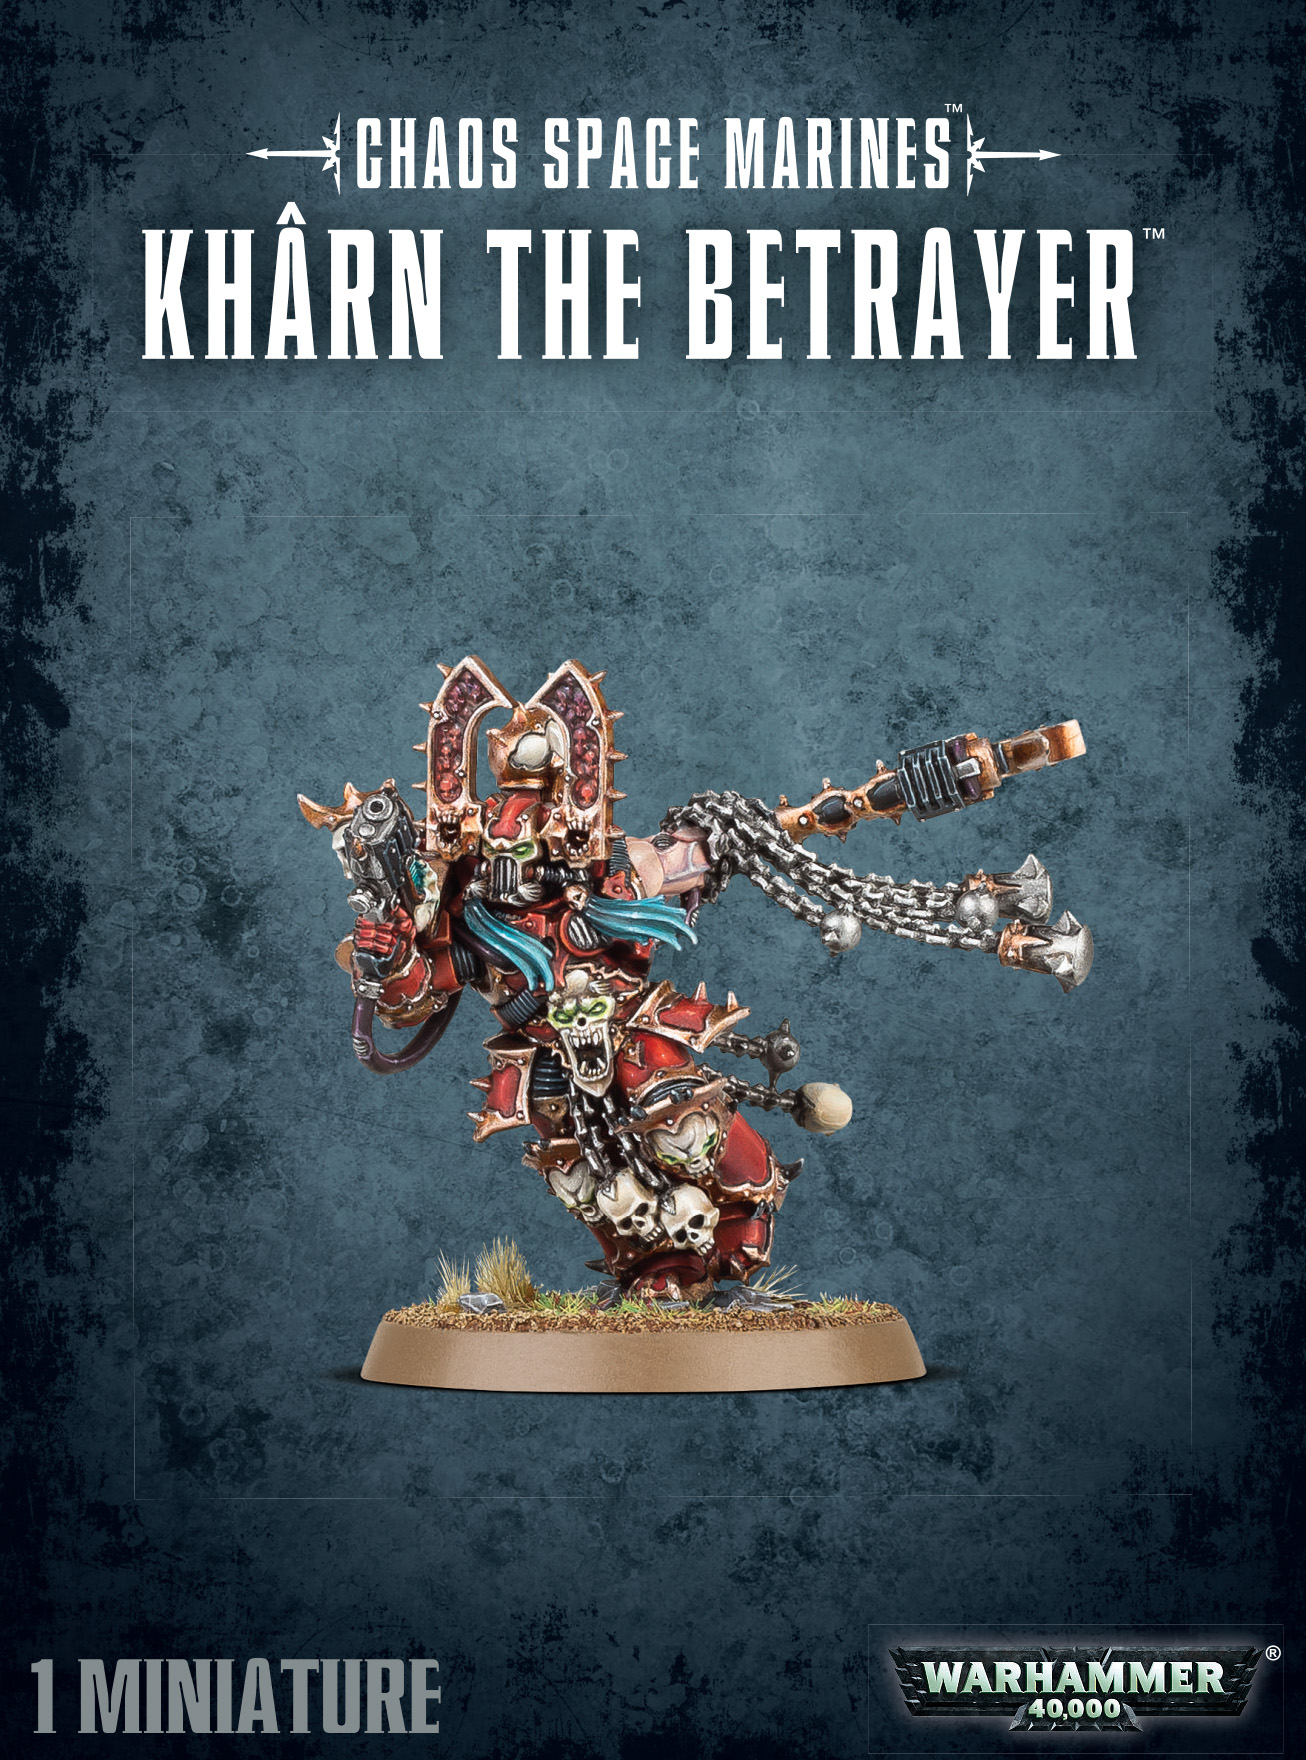 Warhammer 40,000: Chaos Space Marines: Kharn the Betrayer